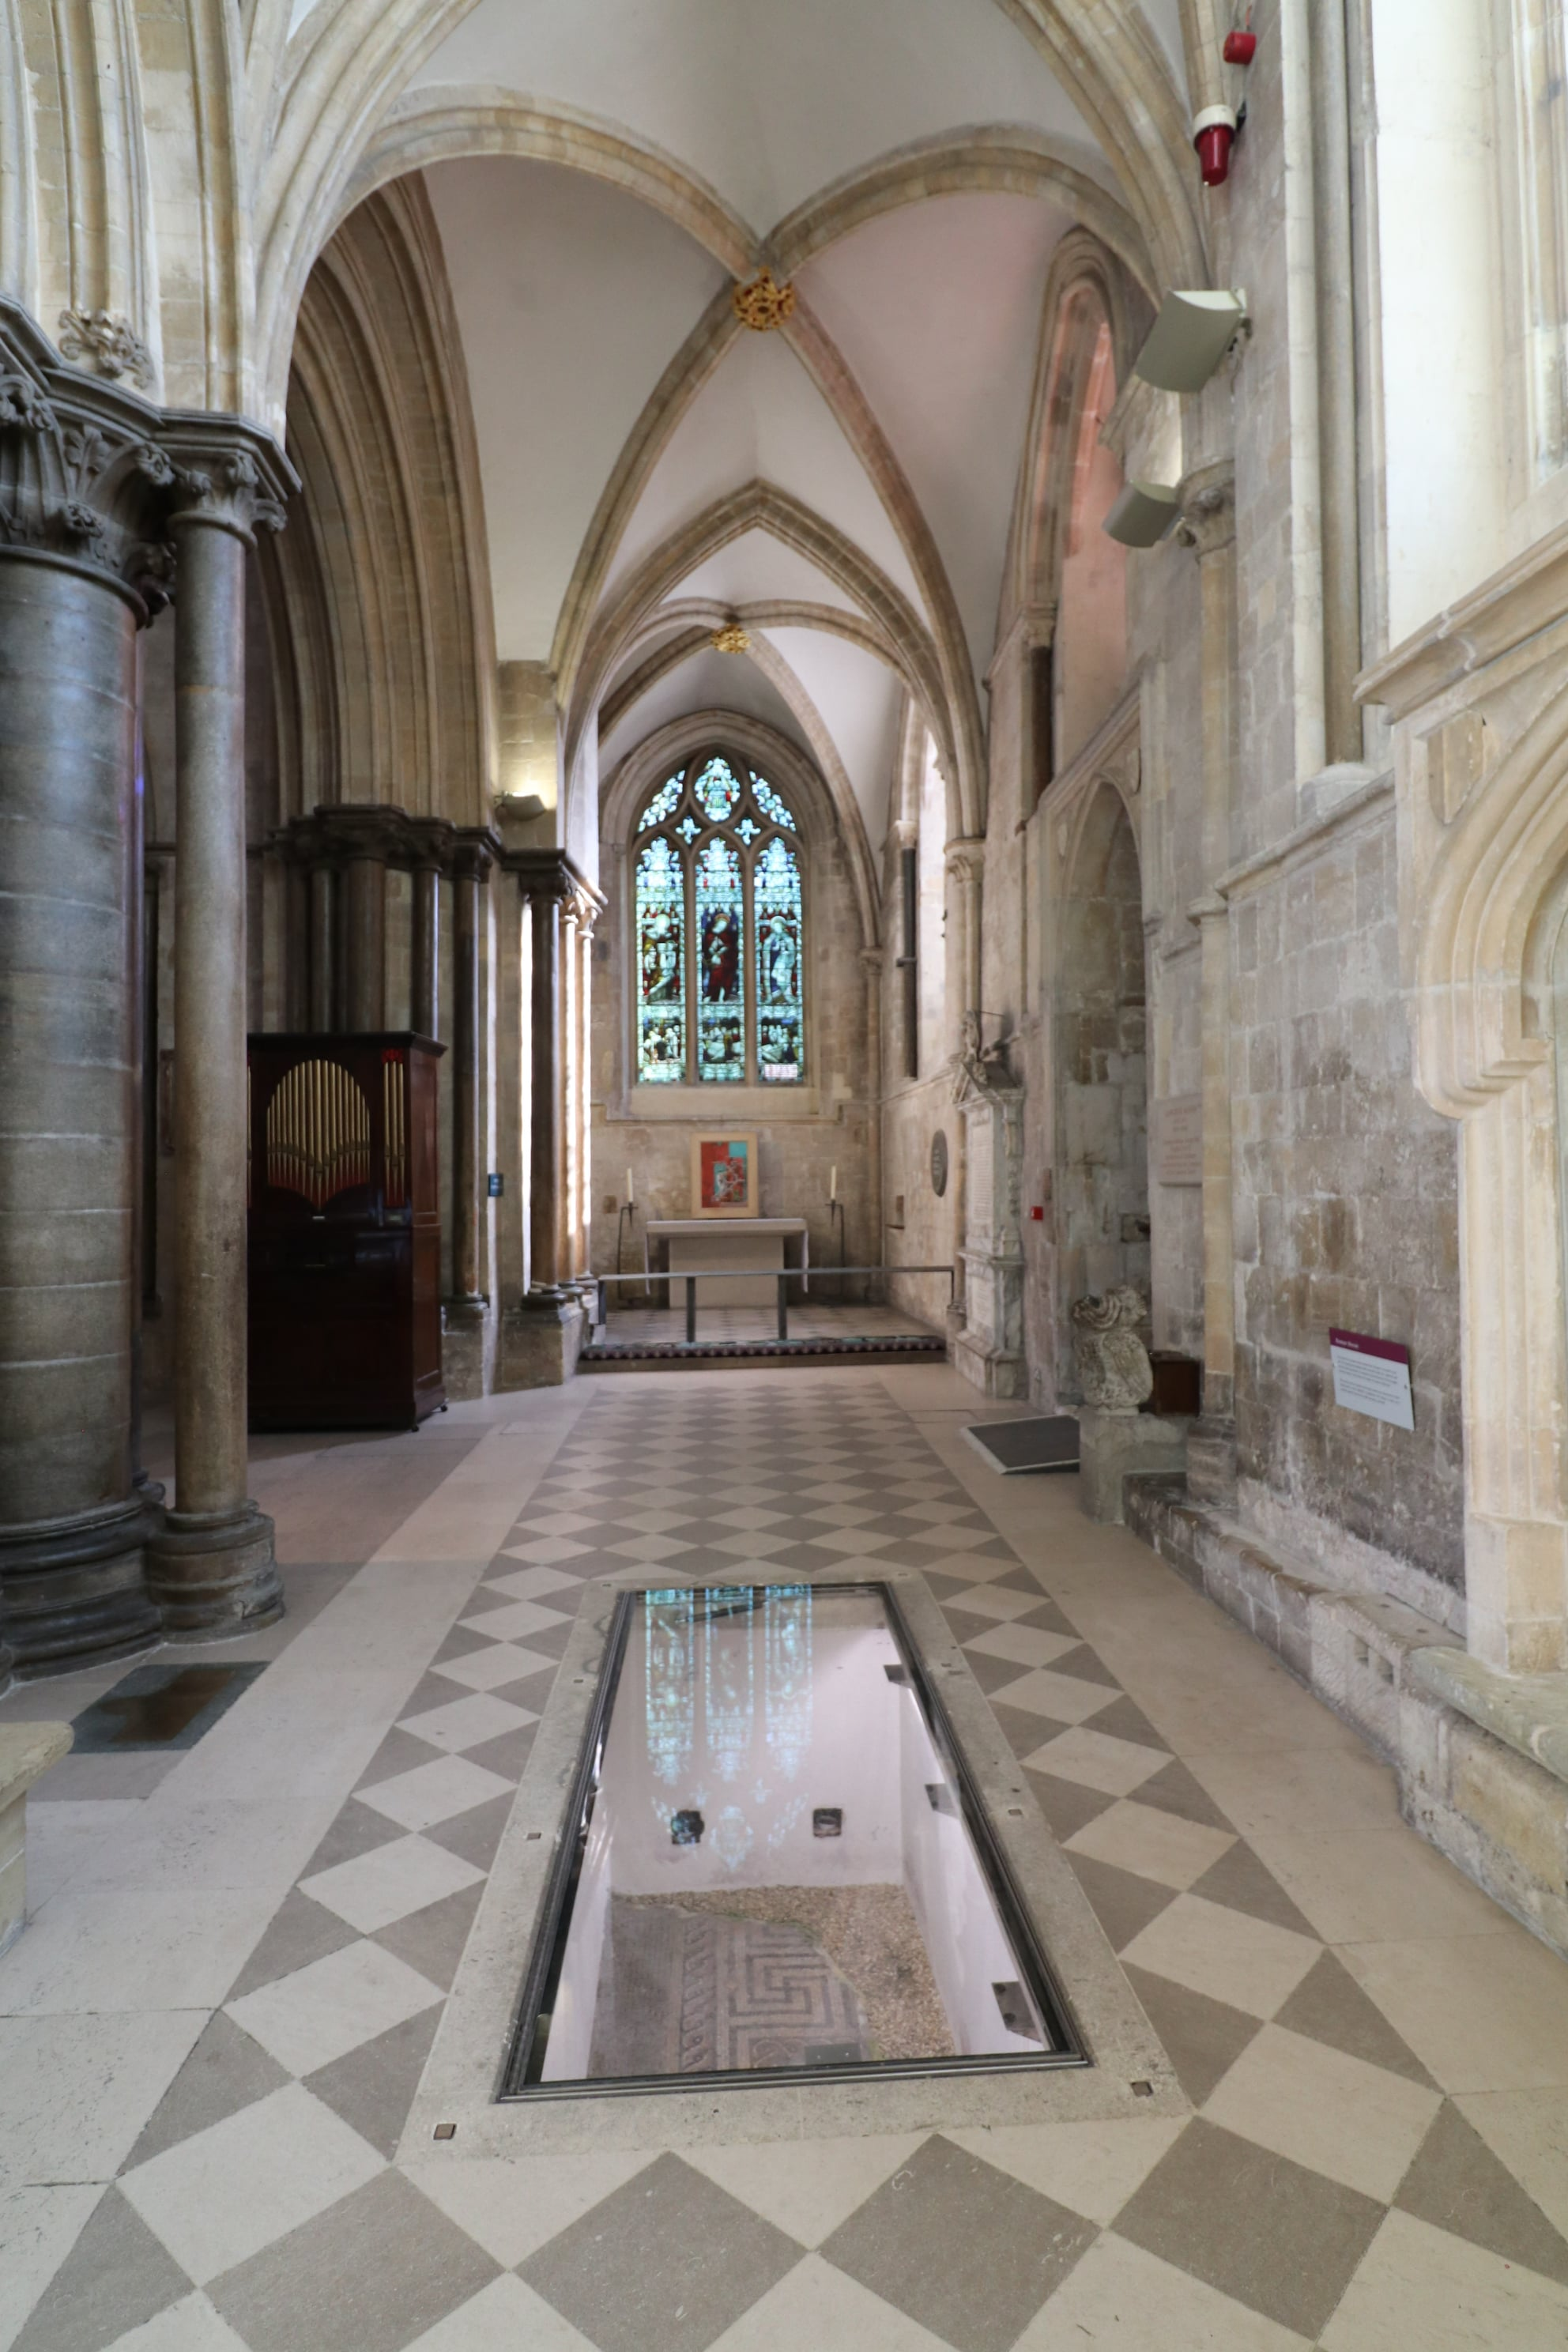 Walk on glass floor panel over Roman mosaic in chichester cathedral